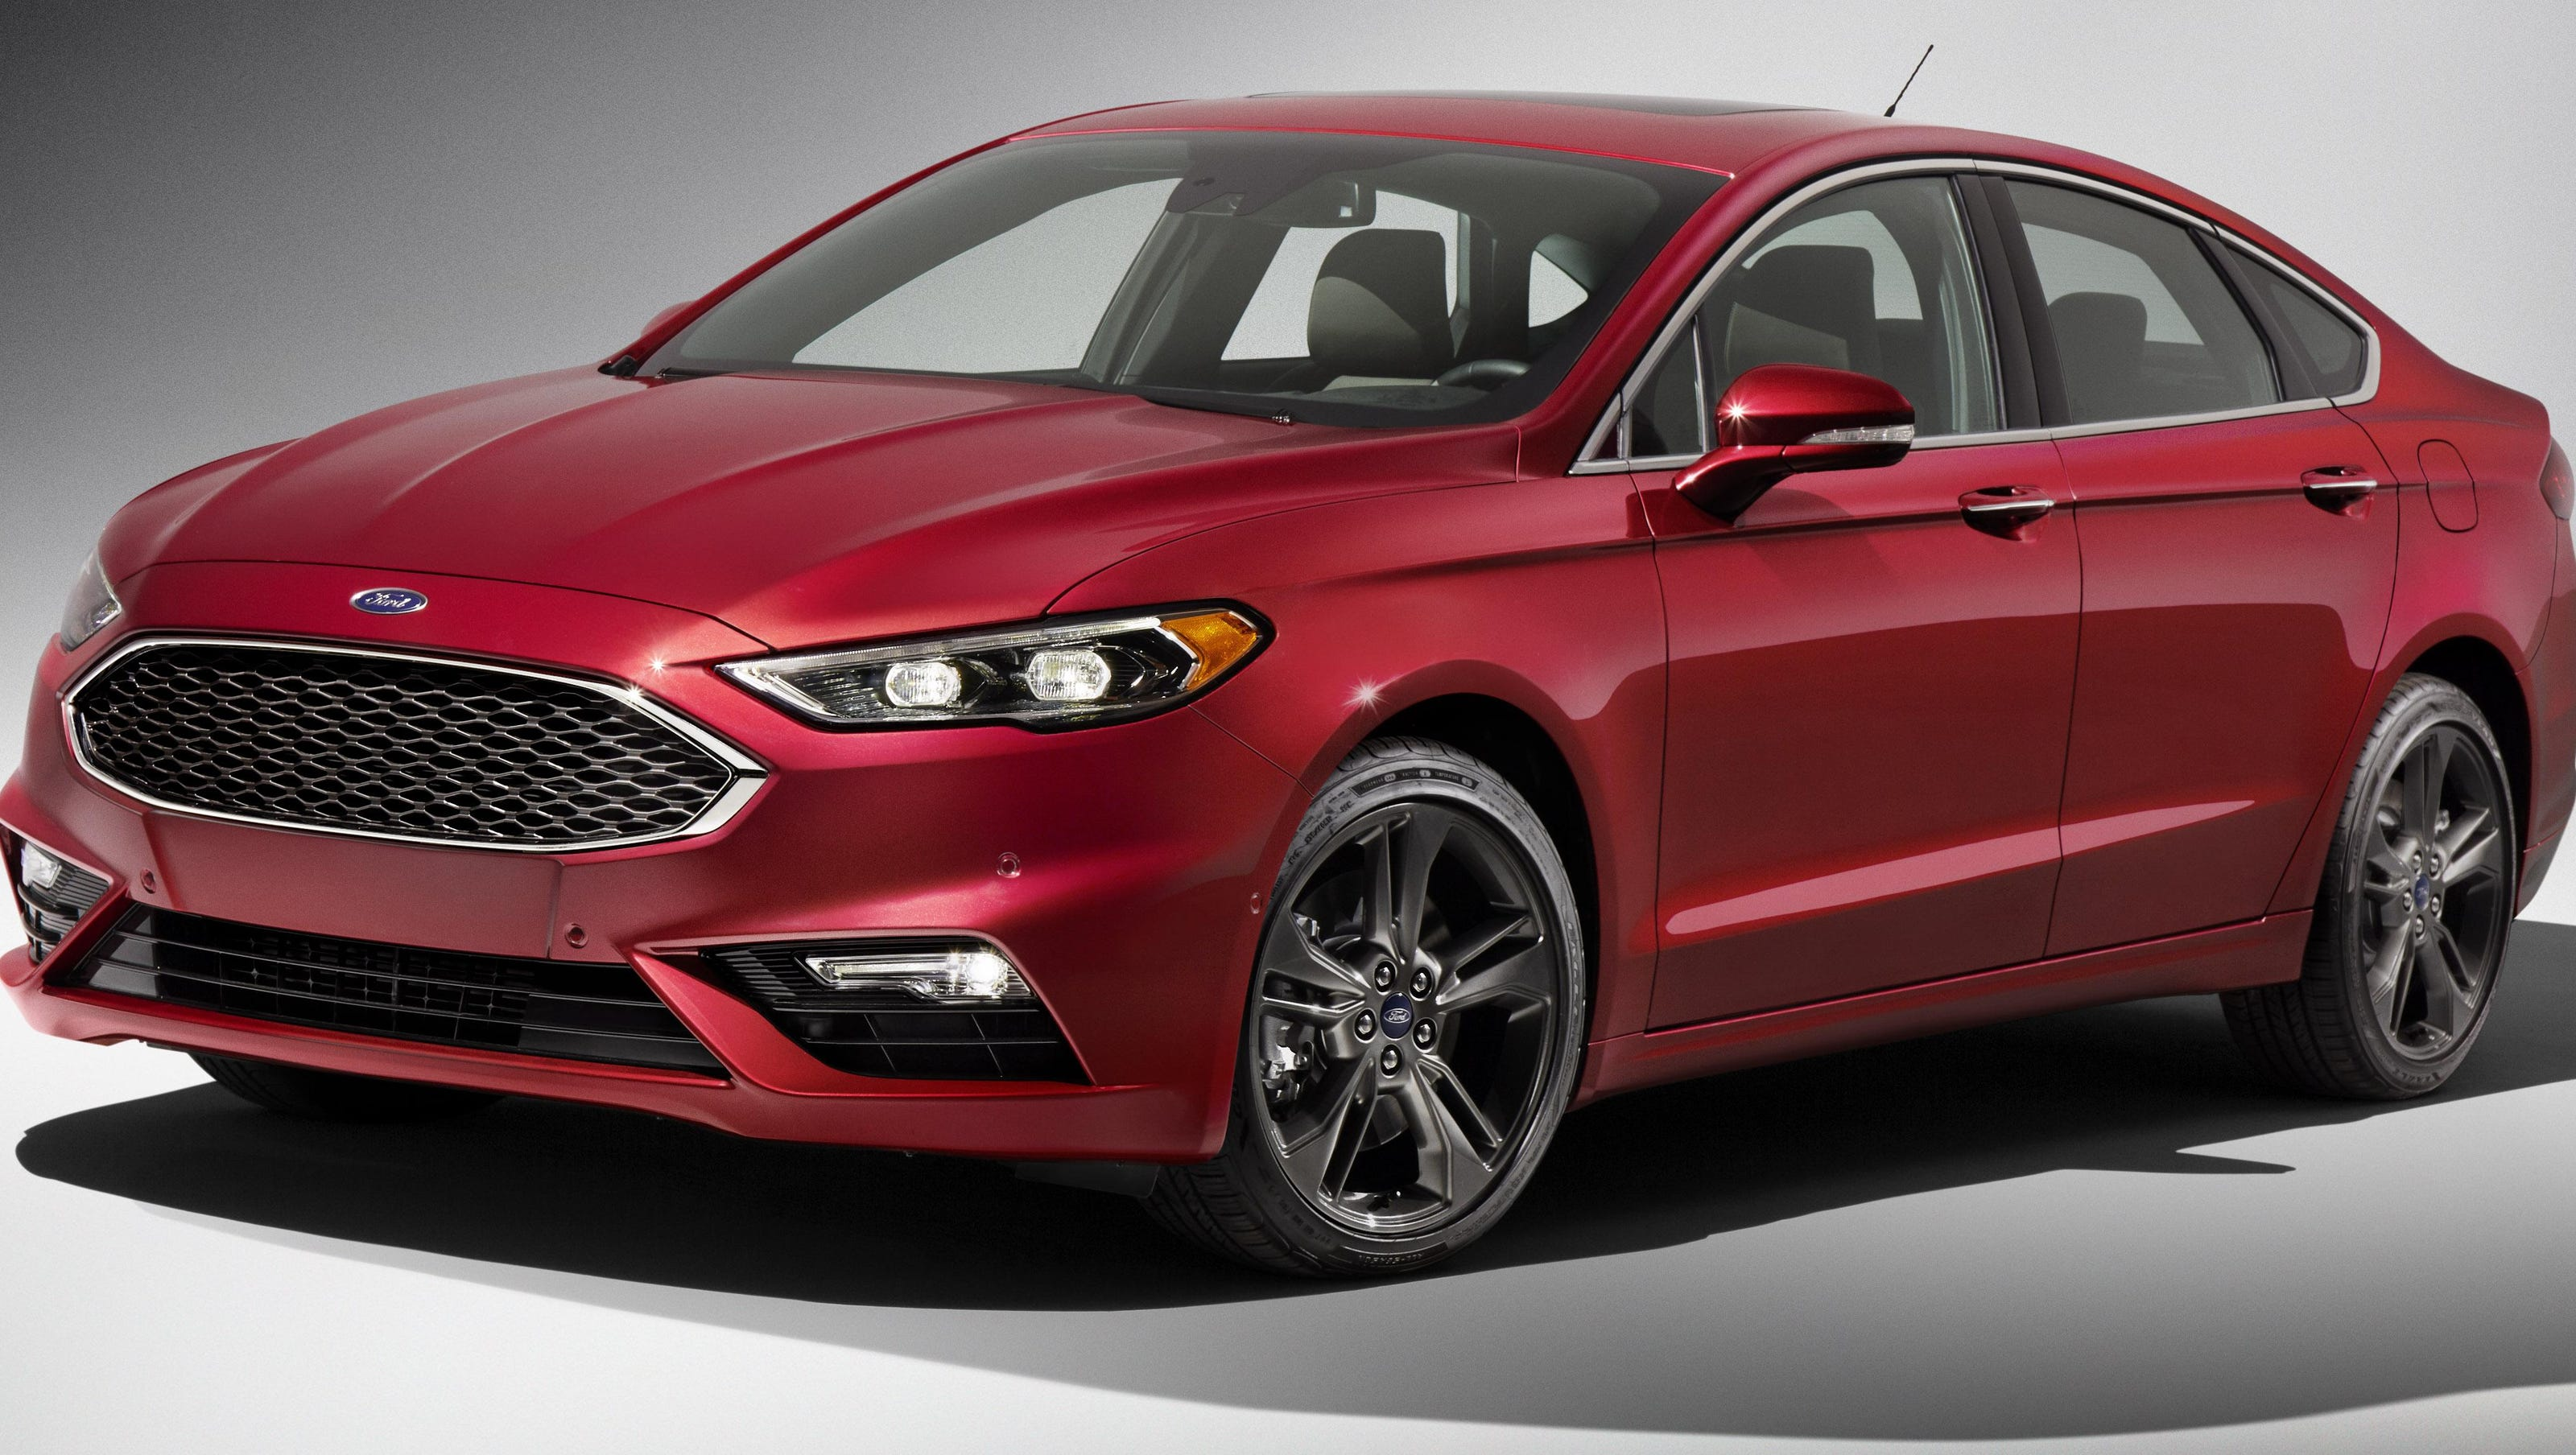 Ford Fusion Redesign Canceled